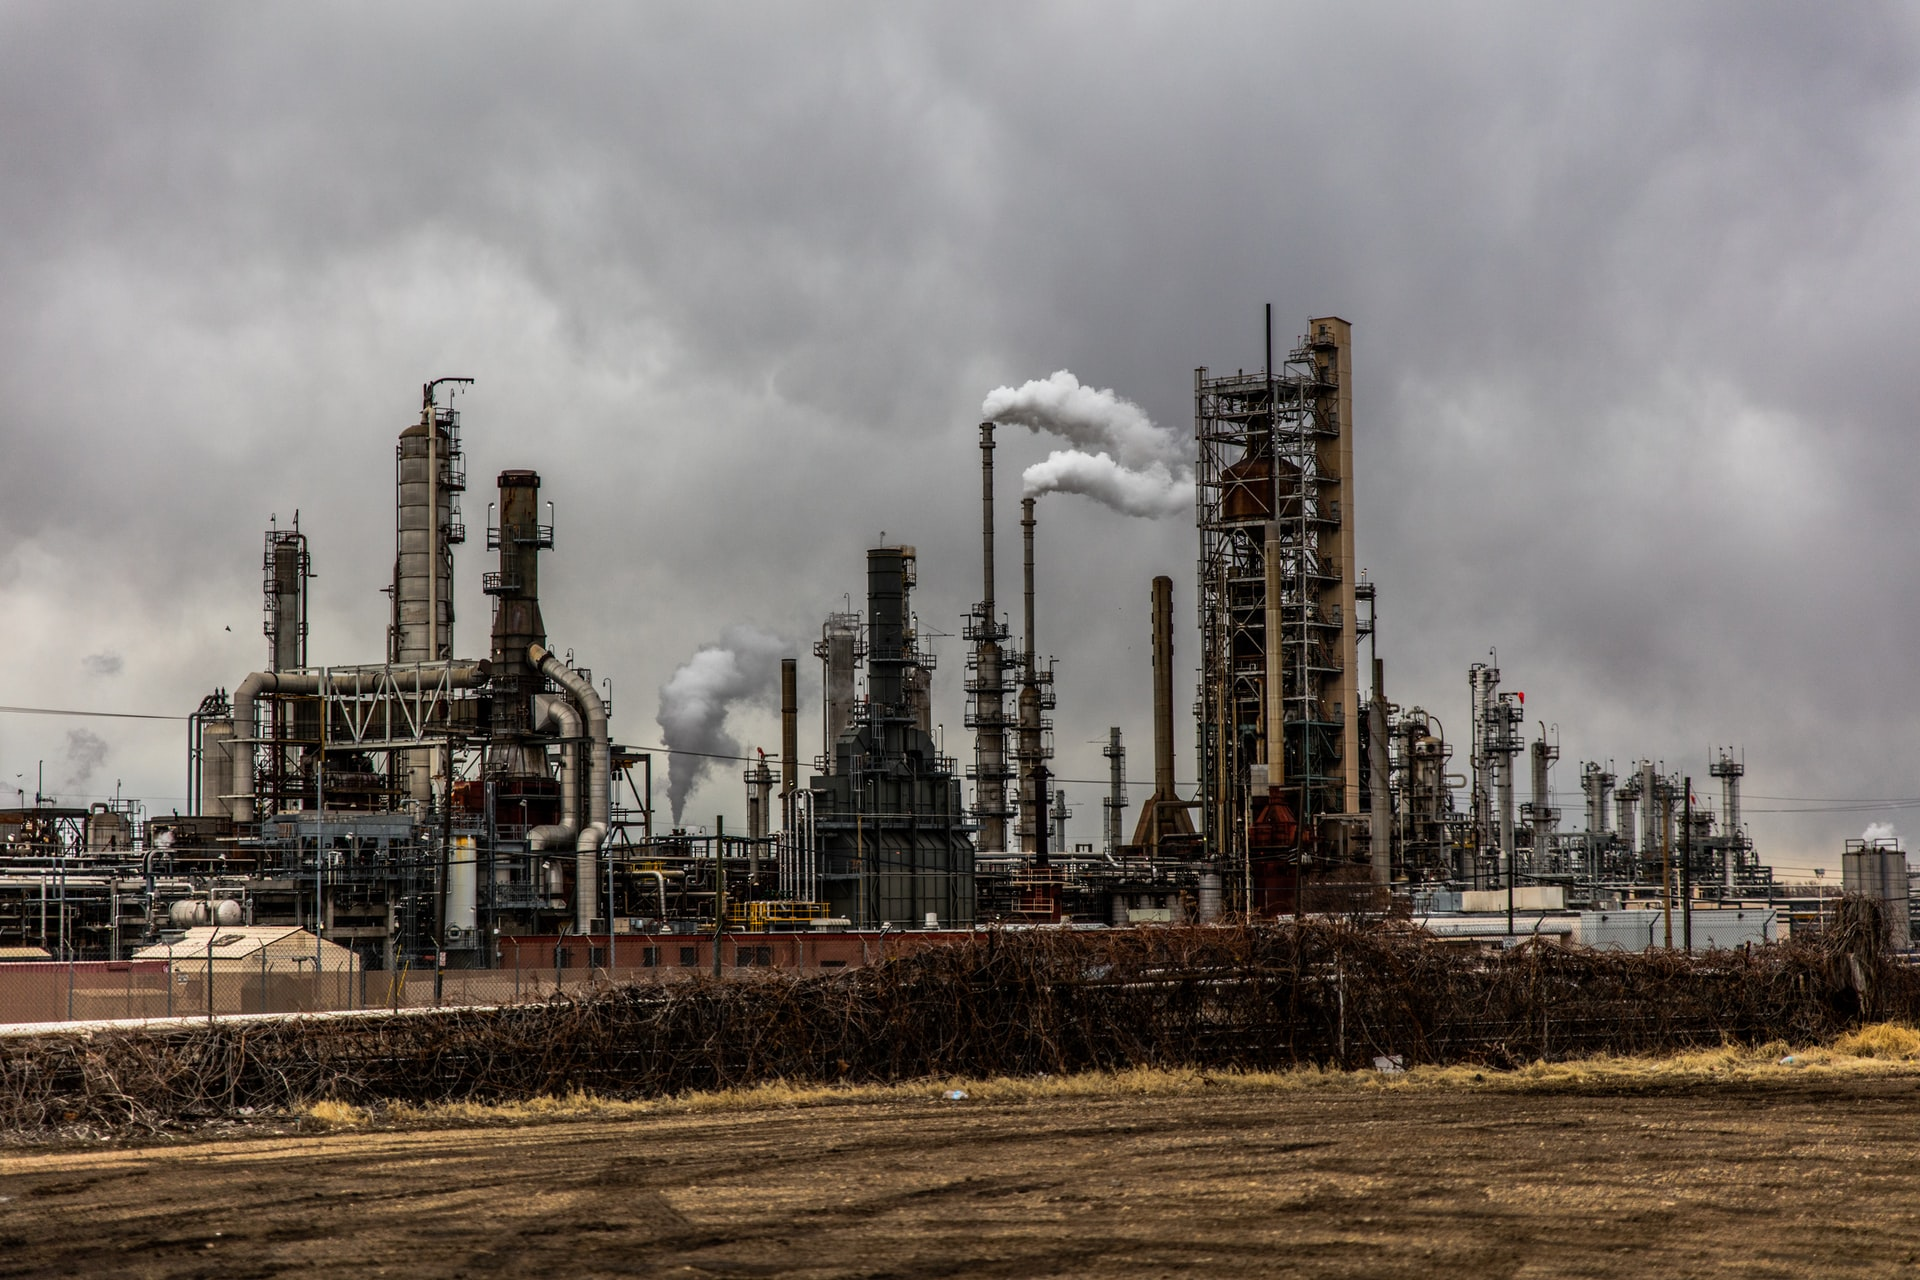 The Government's Effort on Expanding the Indonesian Downstream Chemical Industry by 2023